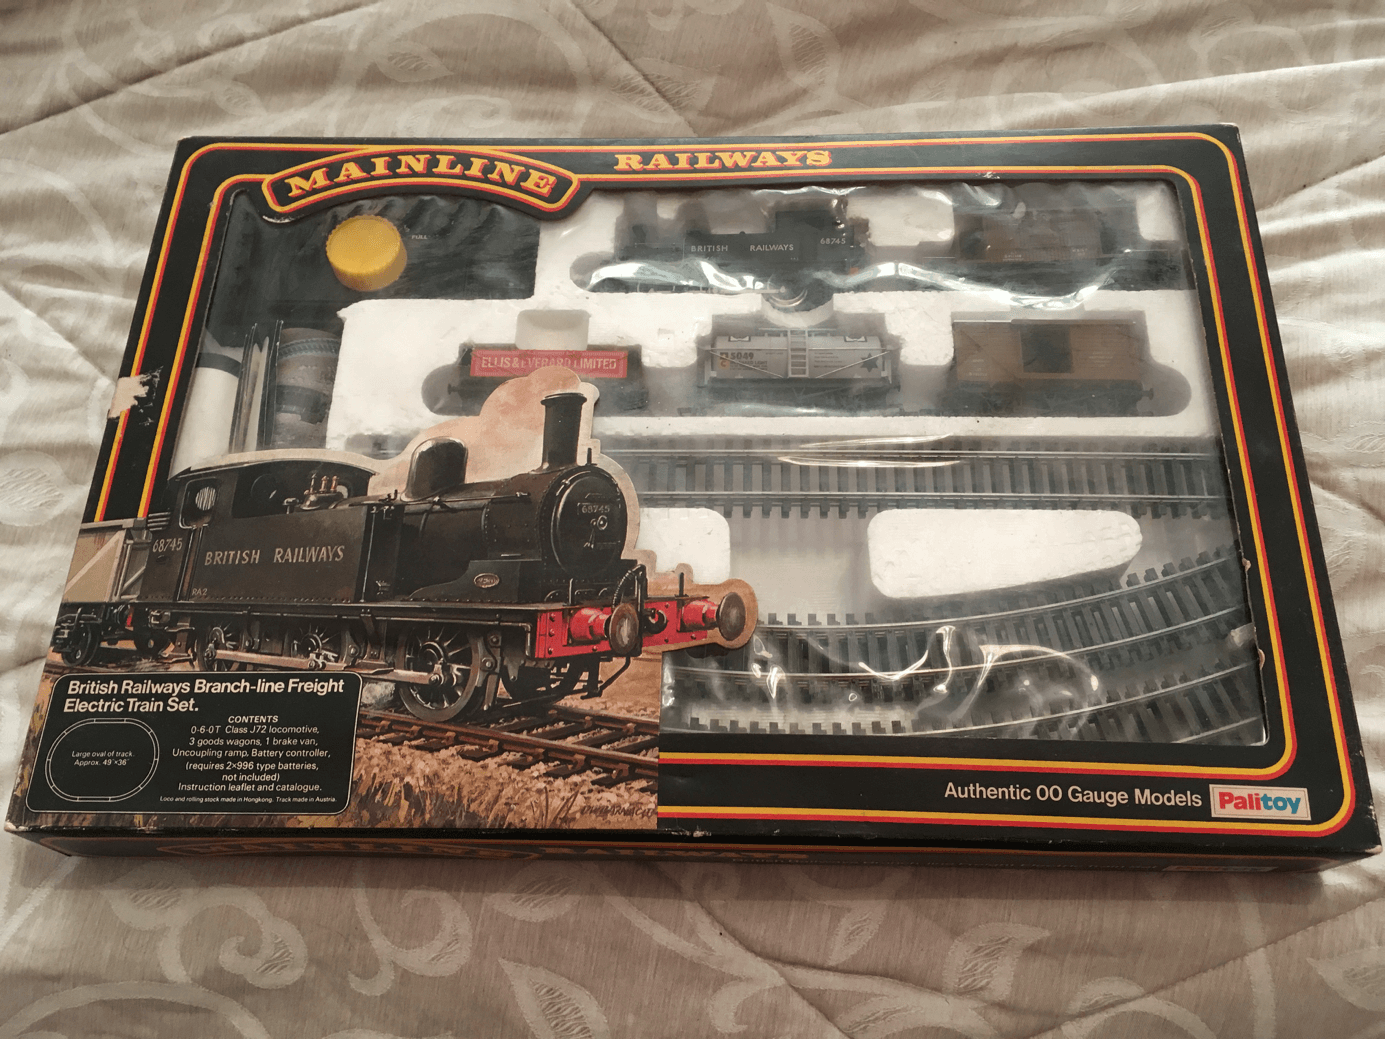 Shrink-Proof Collectables Hard-Working A Selection Of 00 Gauge Wagons Unboxed Model Railways & Trains